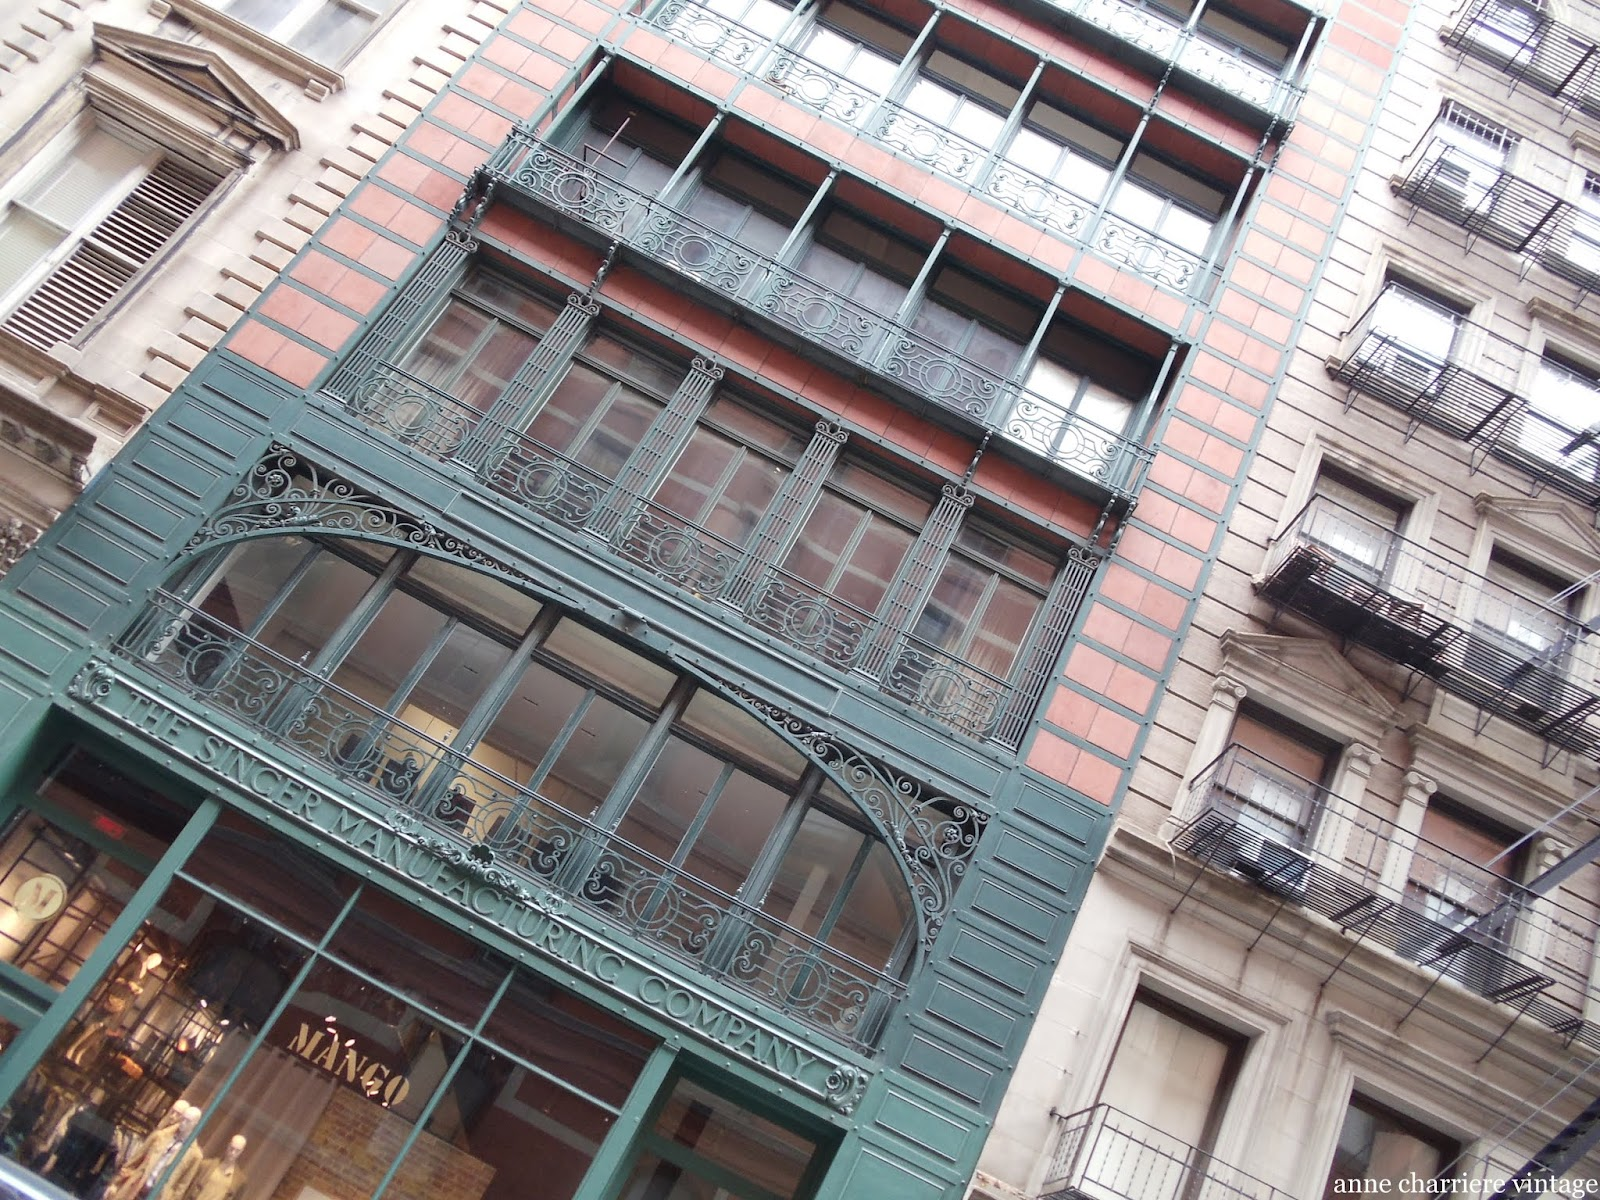 anne charriere voyage, travel photography, new york, soho, tribeca, village,